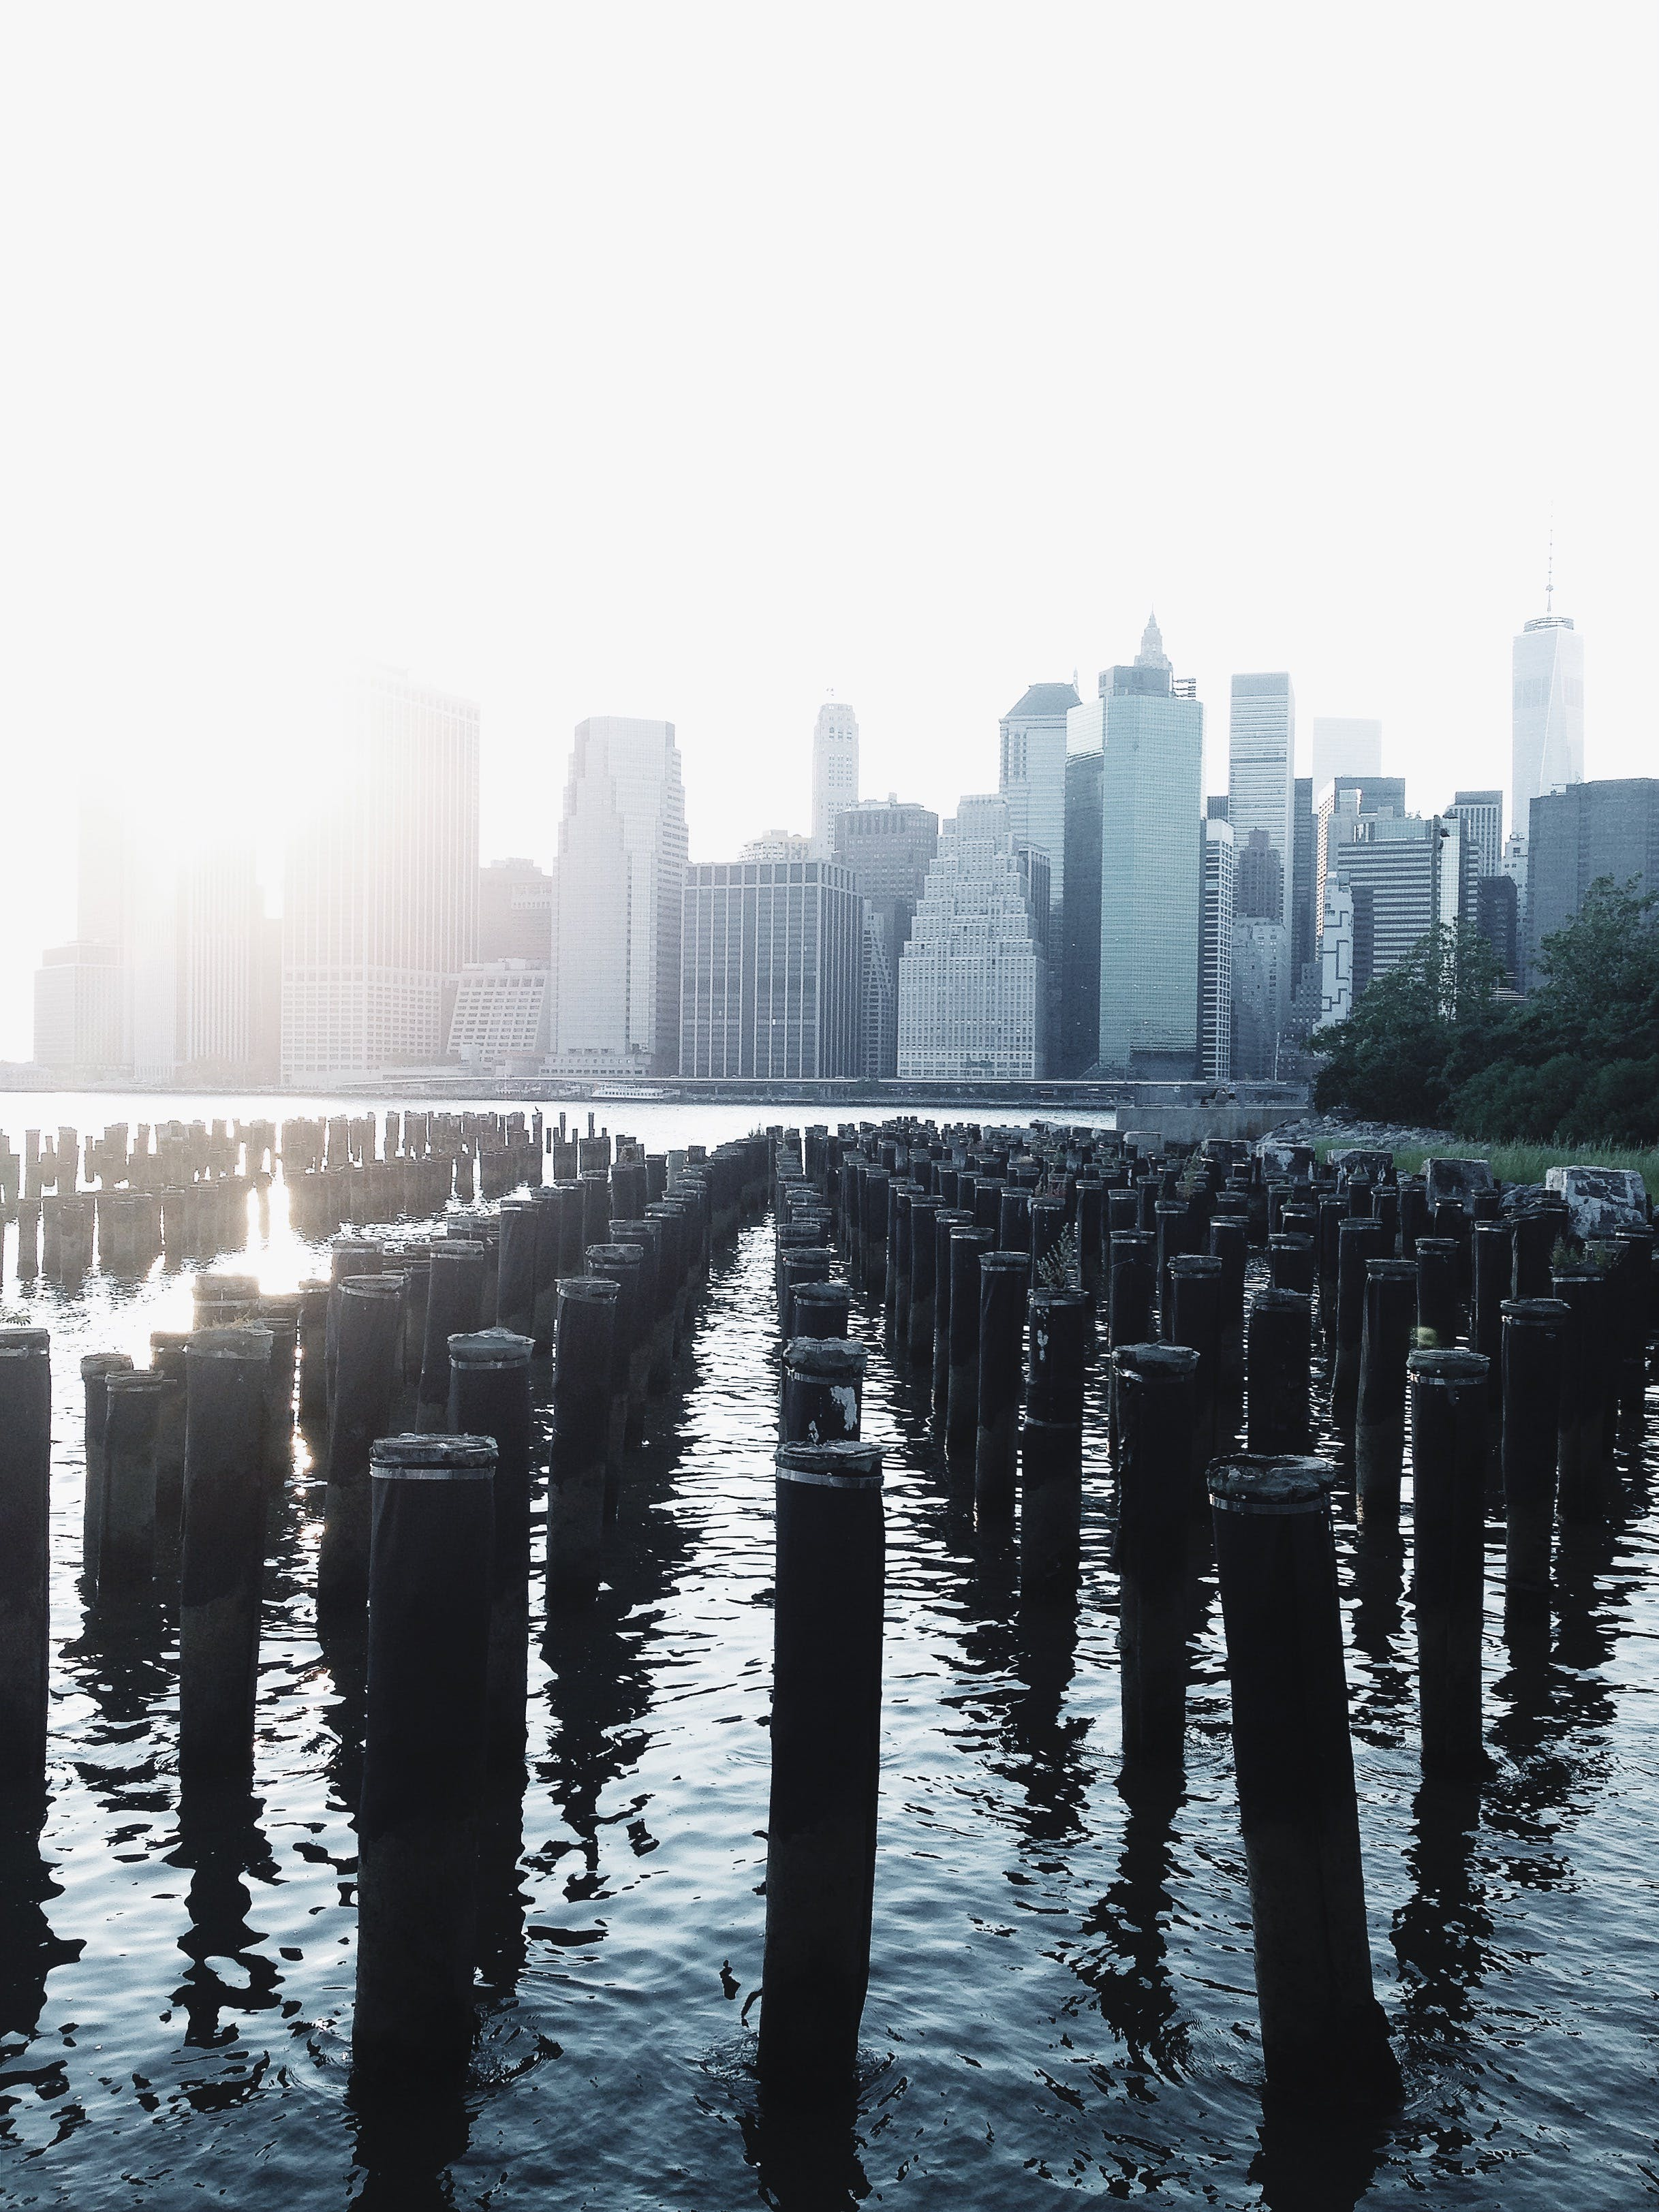 Landscape Photography of Brown Posts on Water Near White High-rise Buildings